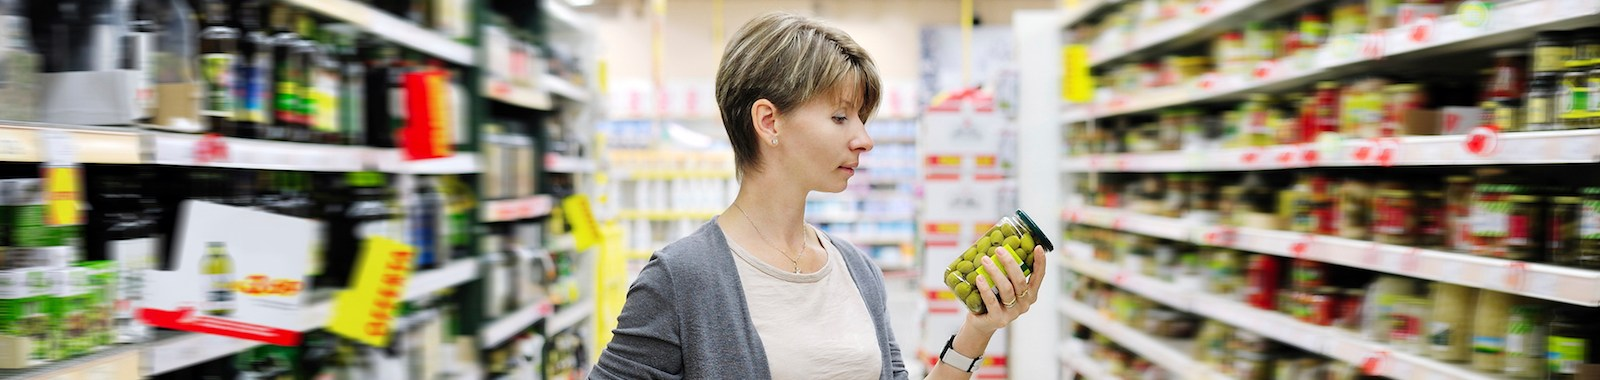 woman shopping and choosing goods at supermarket